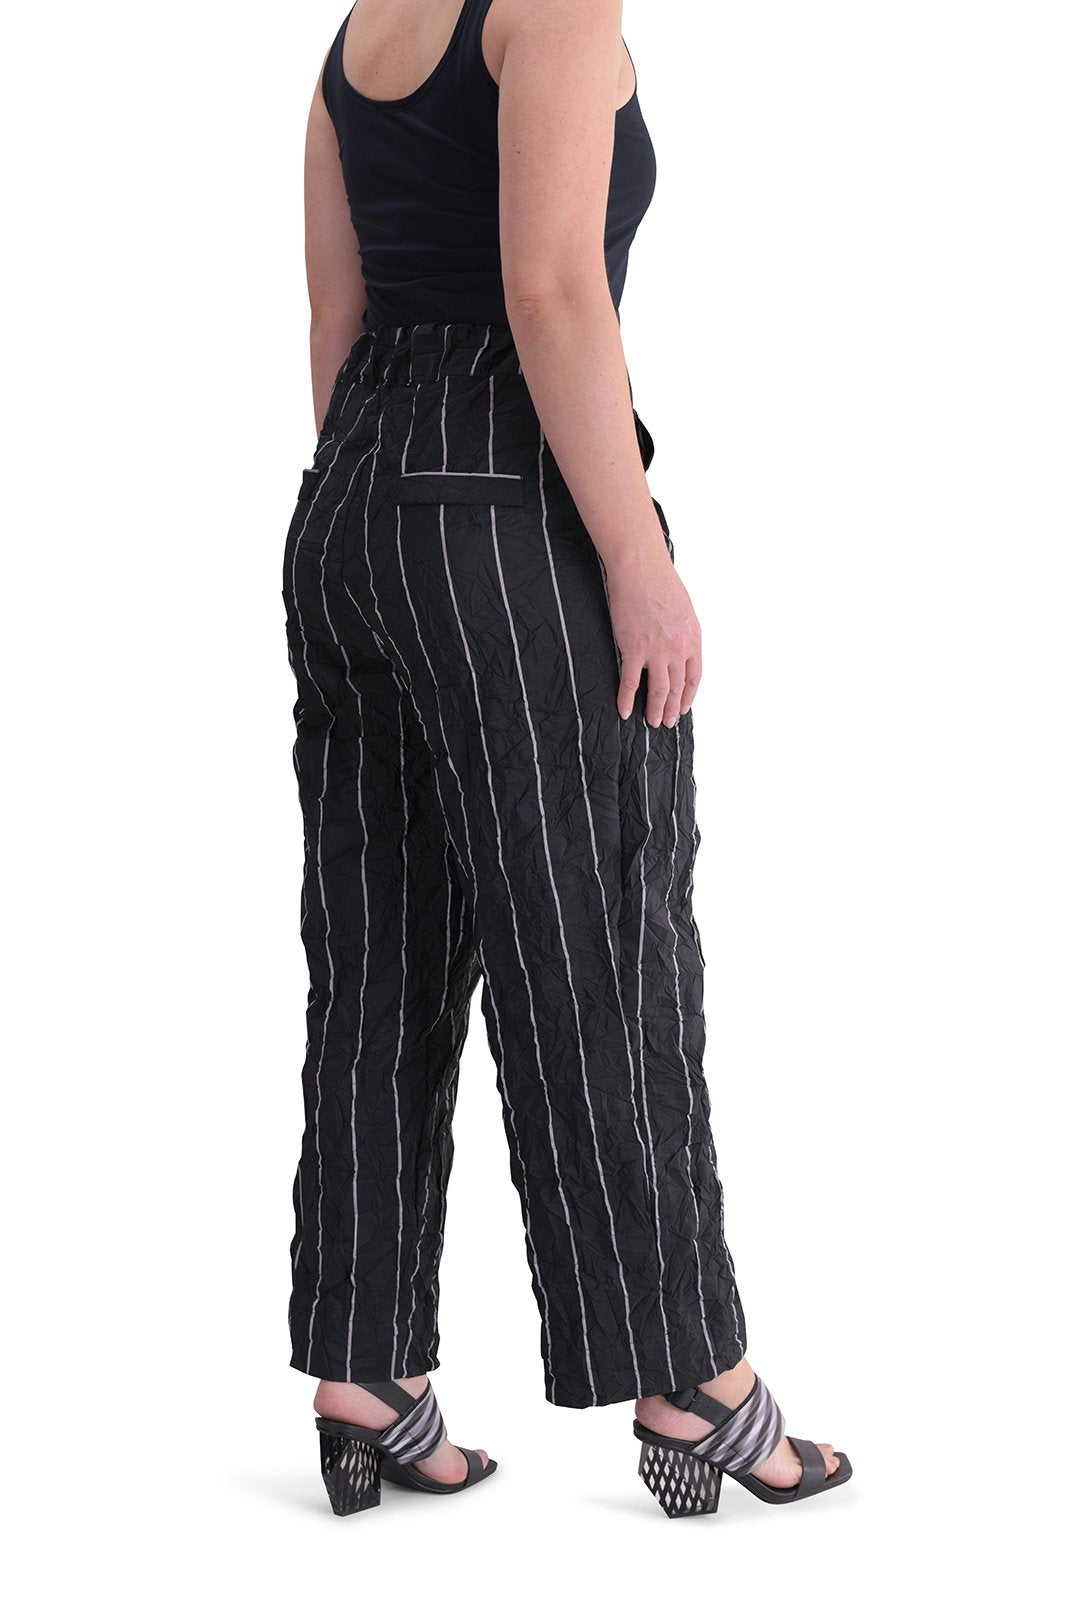 Back, right sided, bottom half view of a woman wearing the alembika pinstriped pant. The pant is black with white pinstripes. The back has two welt pockets. The waist is elastic and the pant sits right at the ankles. This pant has a straight leg silhouette.